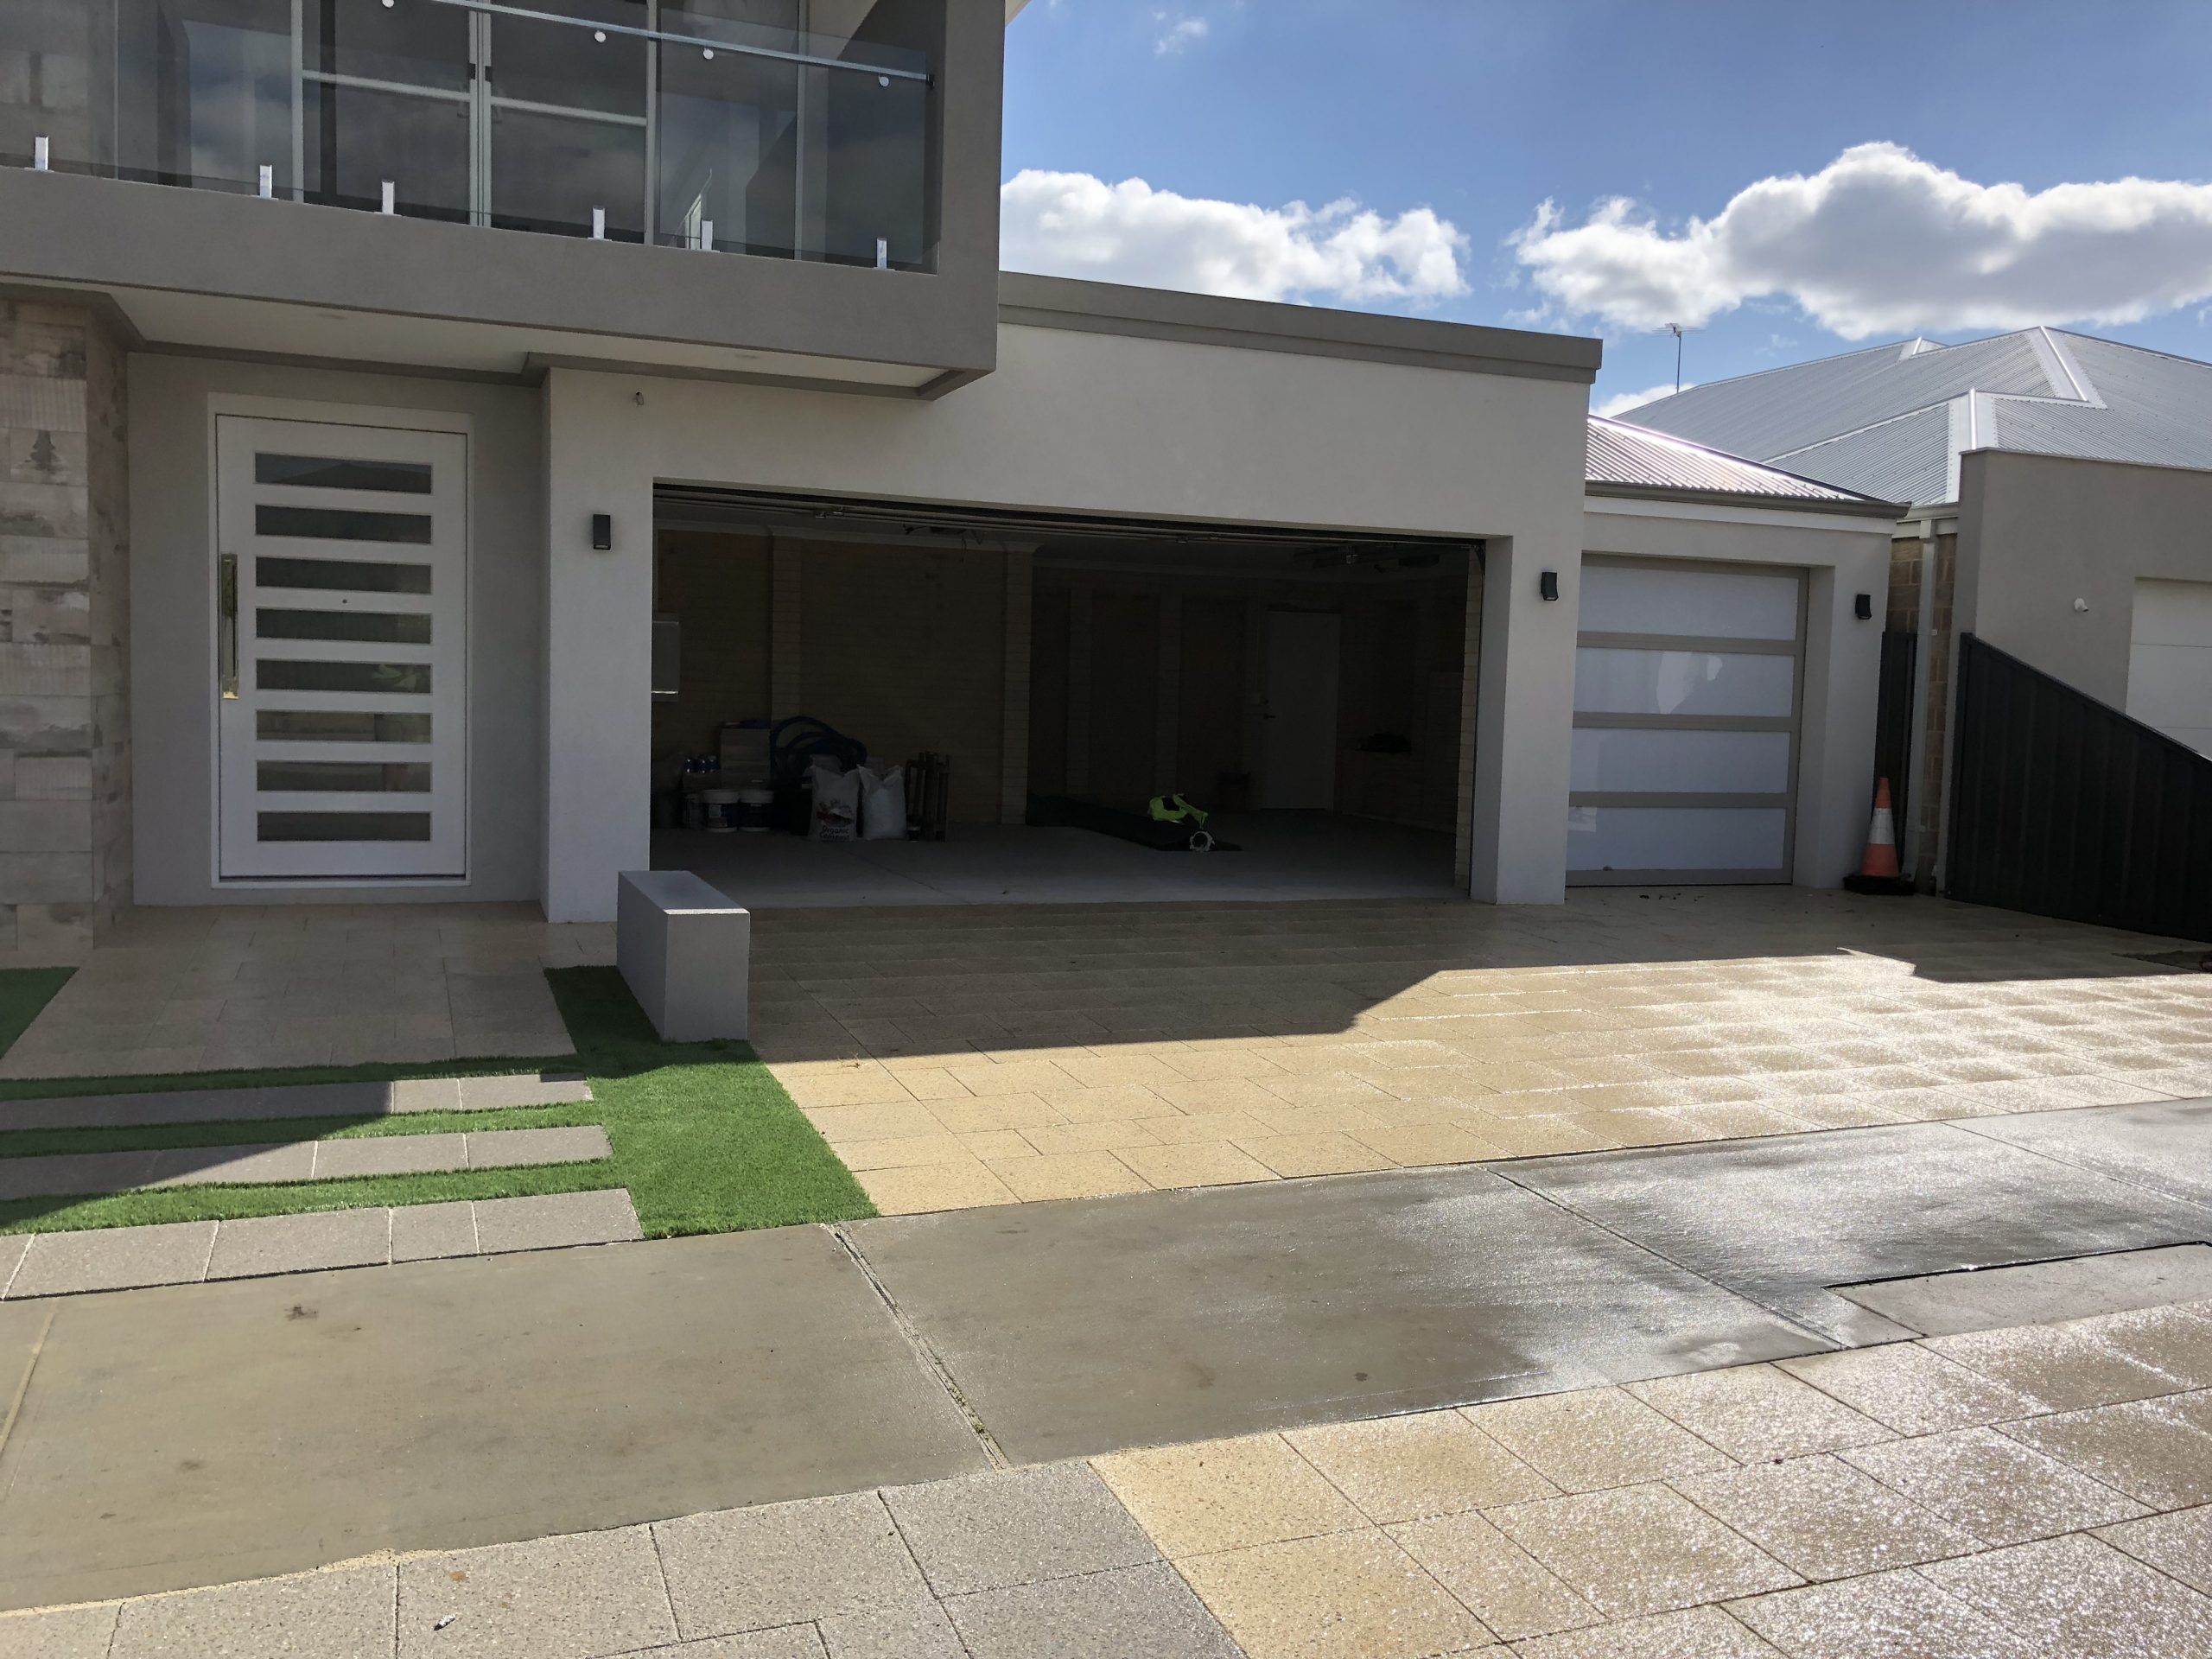 Driveway Paving in Canberra, ACT